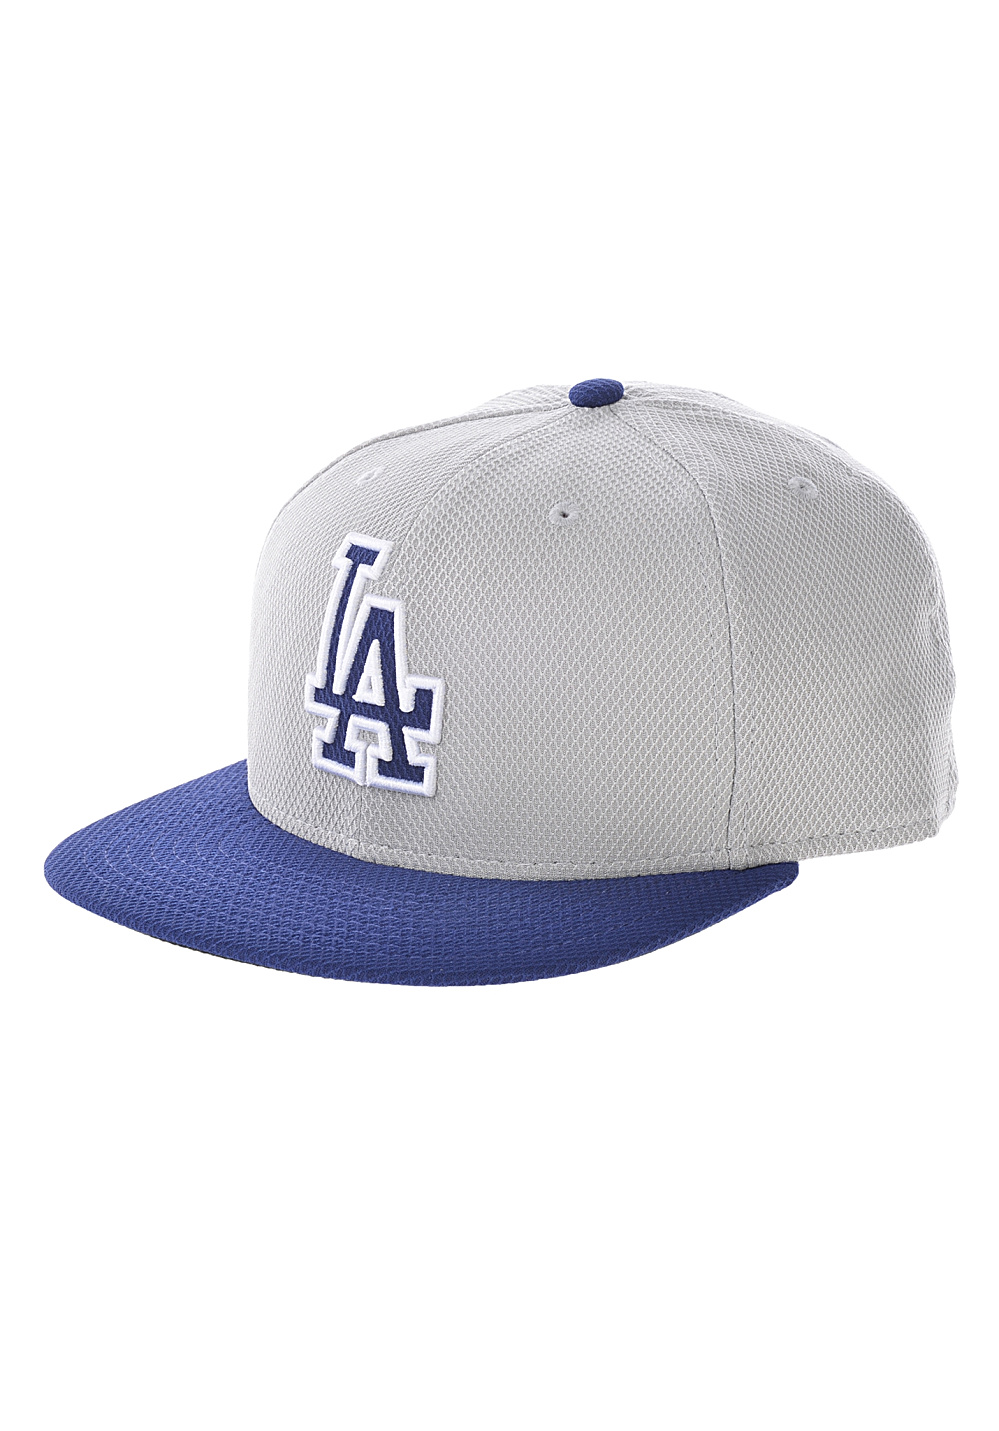 c984568369fcf Next. -21%. NEW Era. 59Fifty Diamond Los Angeles Dodgers - Gorra ajustada